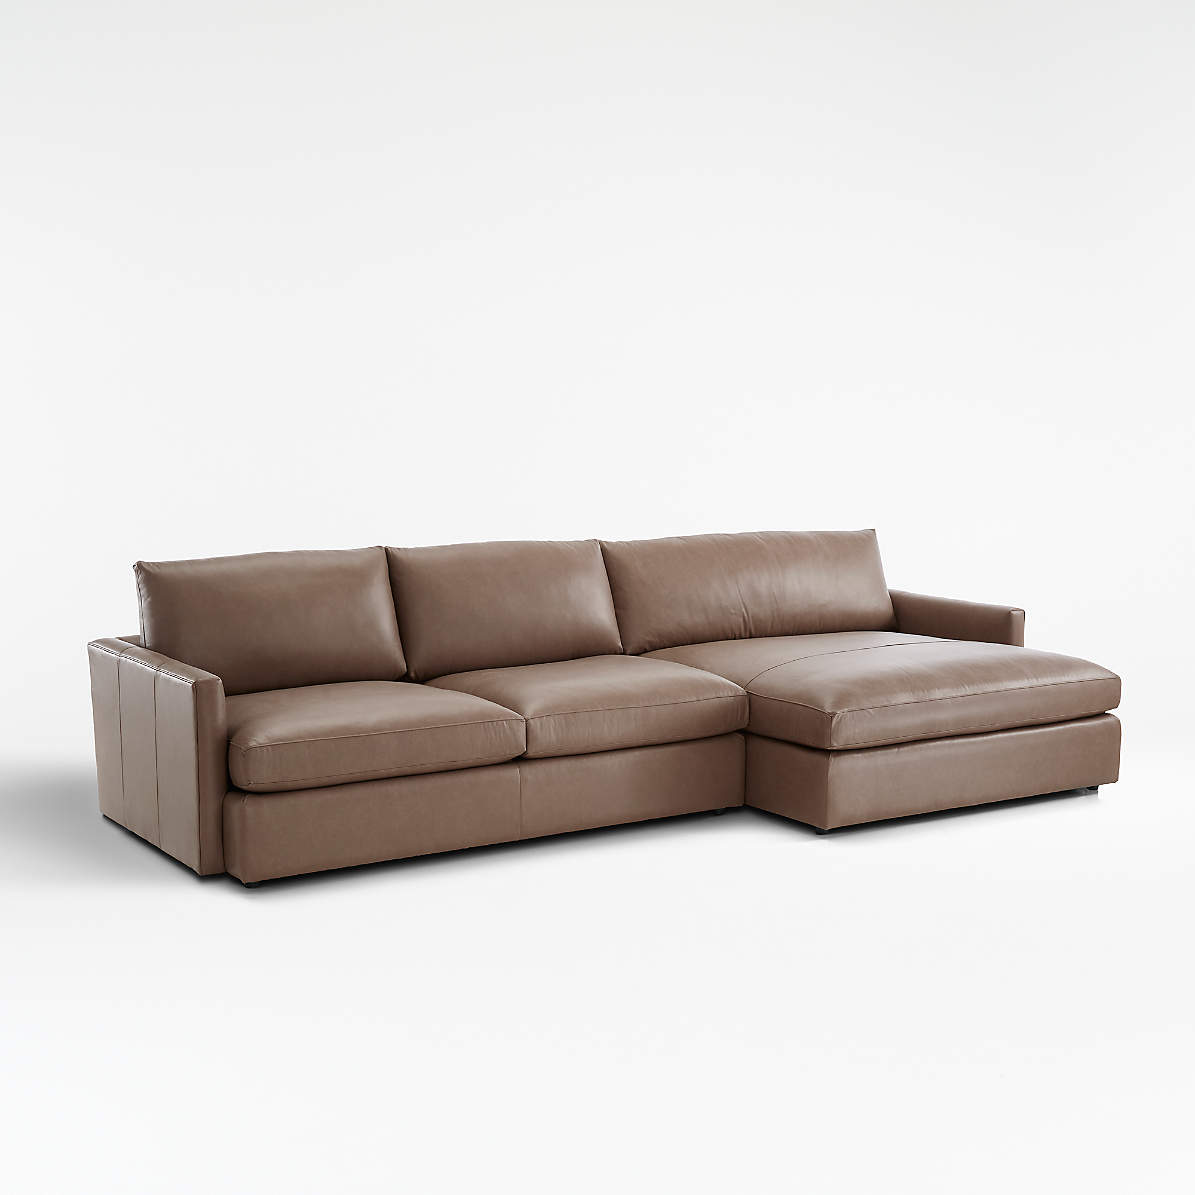 lounge ii leather 2 piece right arm double chaise sectional sofa